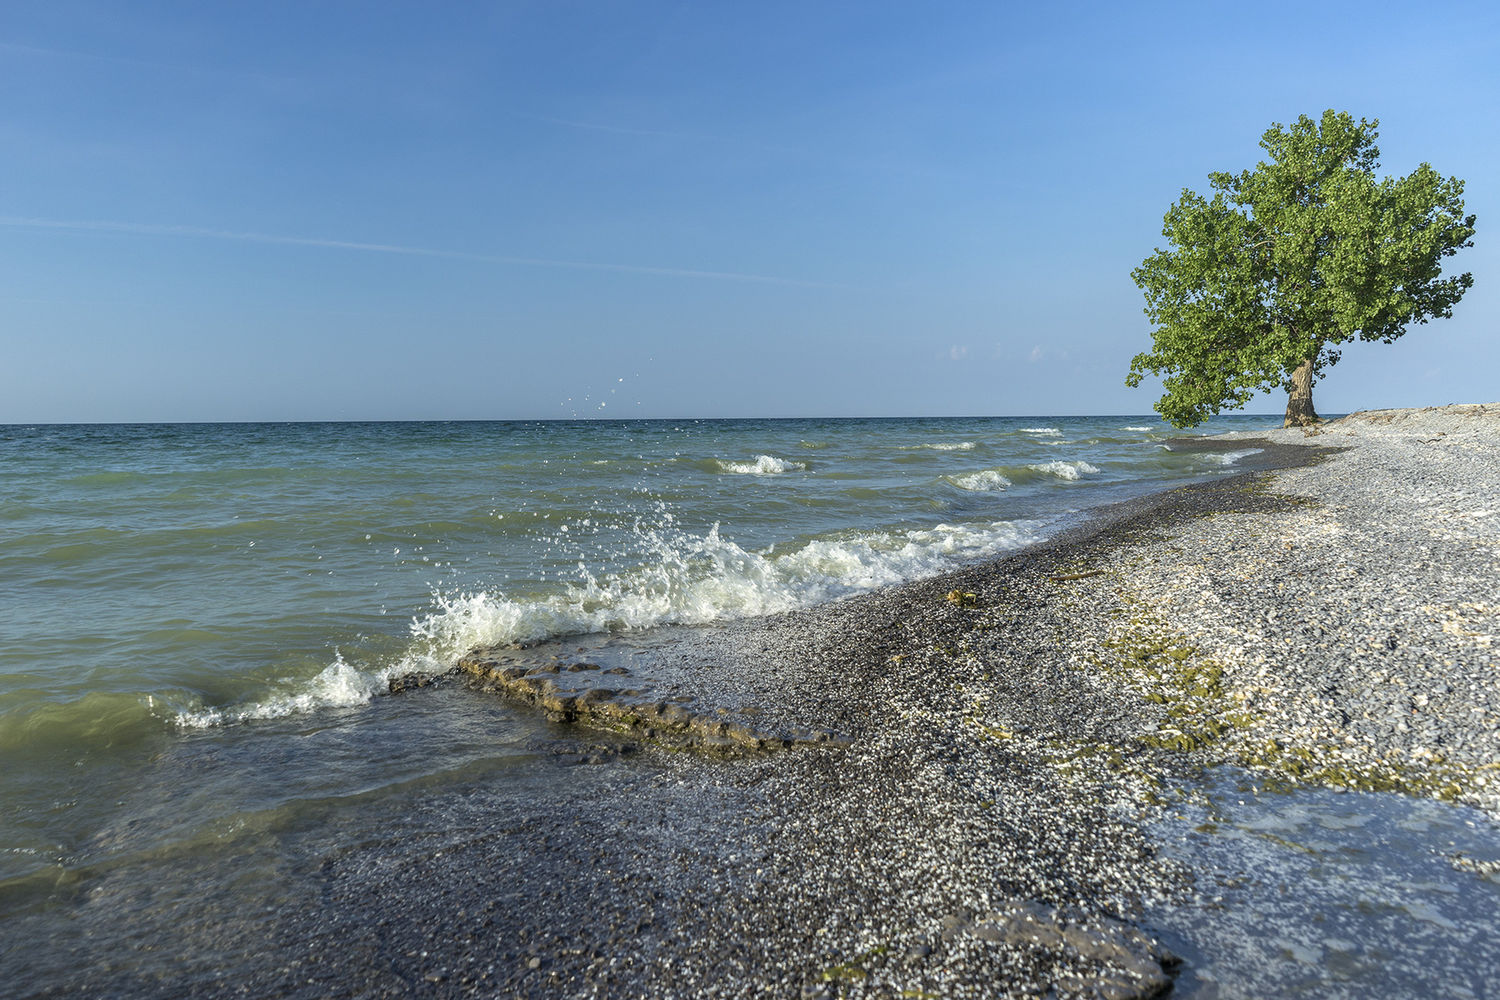 Ostrander Point, Prince Edward County, Ontario, Canada.